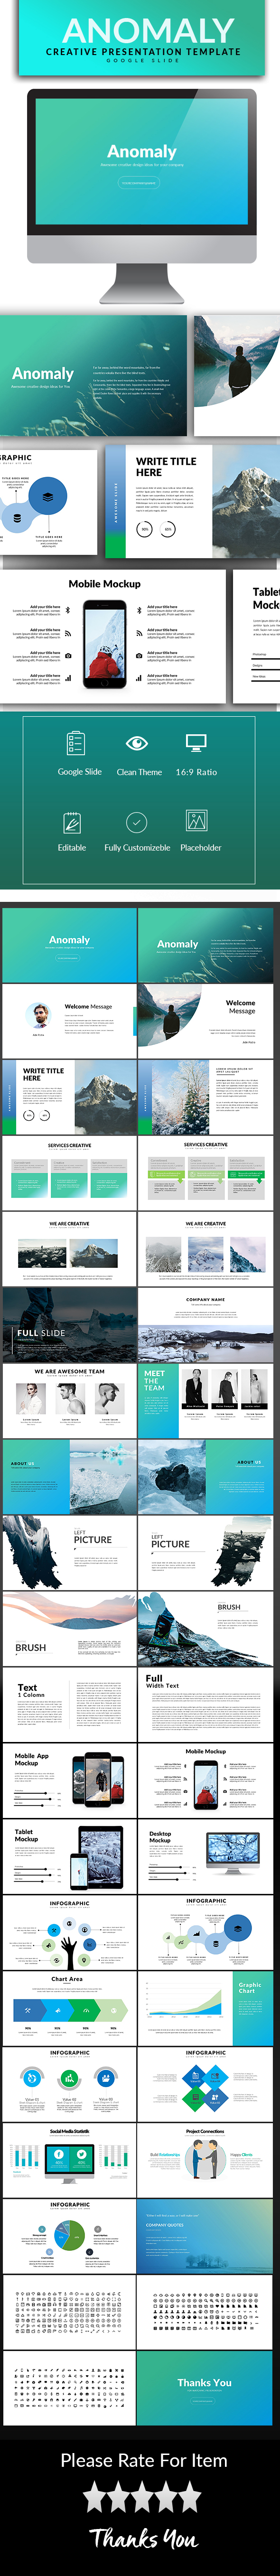 Anomaly Google Slide Template - Google Slides Presentation Templates